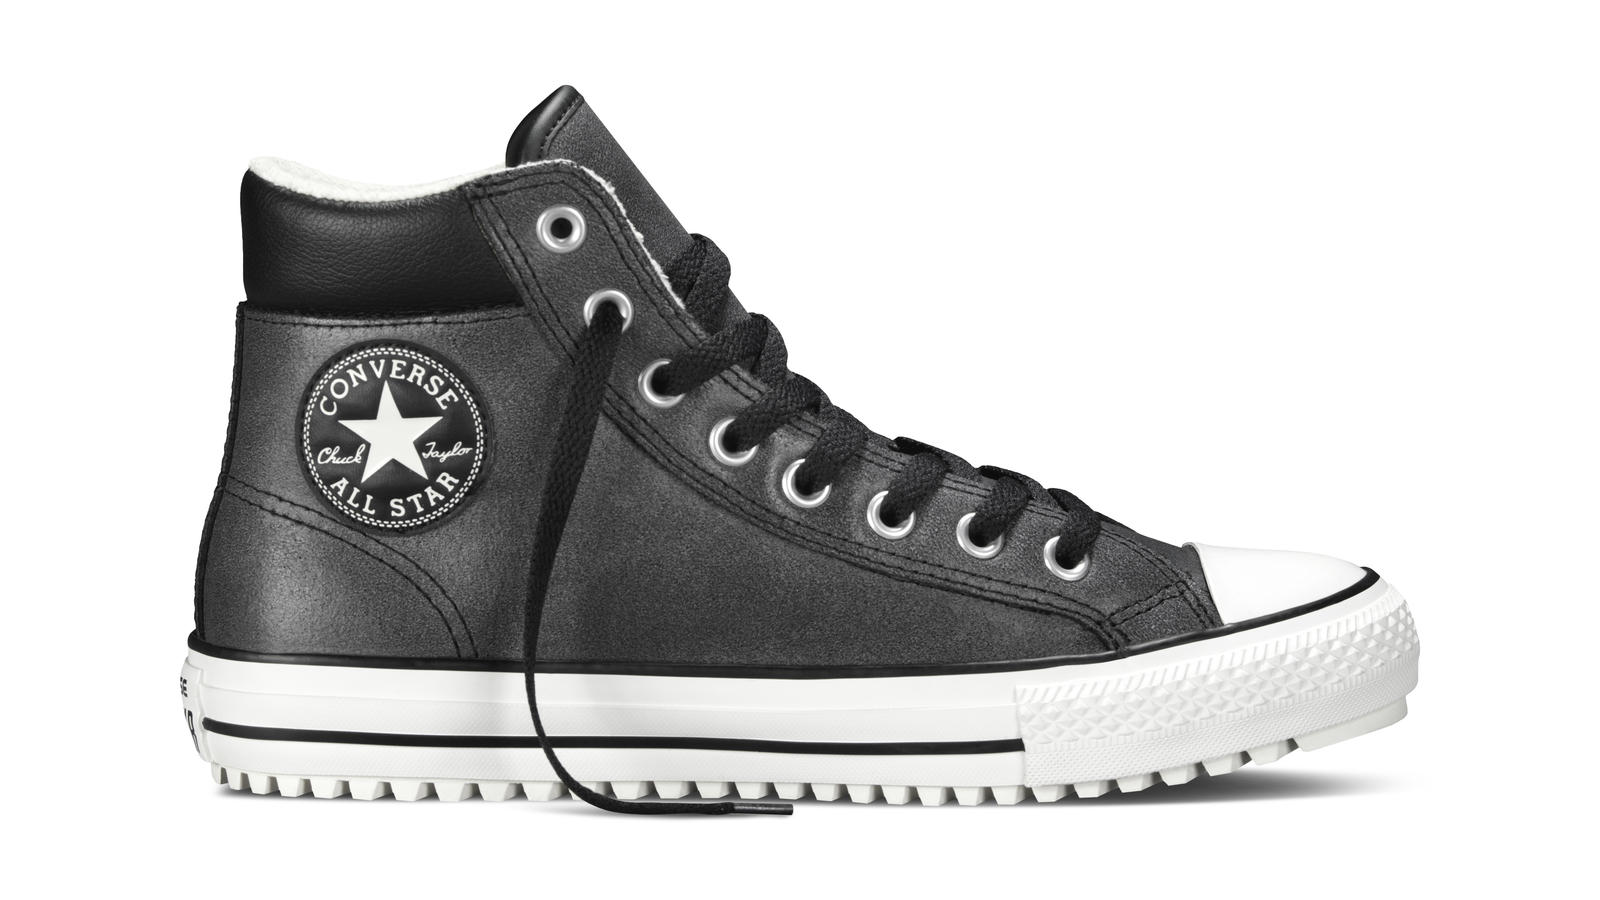 Converse Chuck Taylor All Star Boot PC Nike News